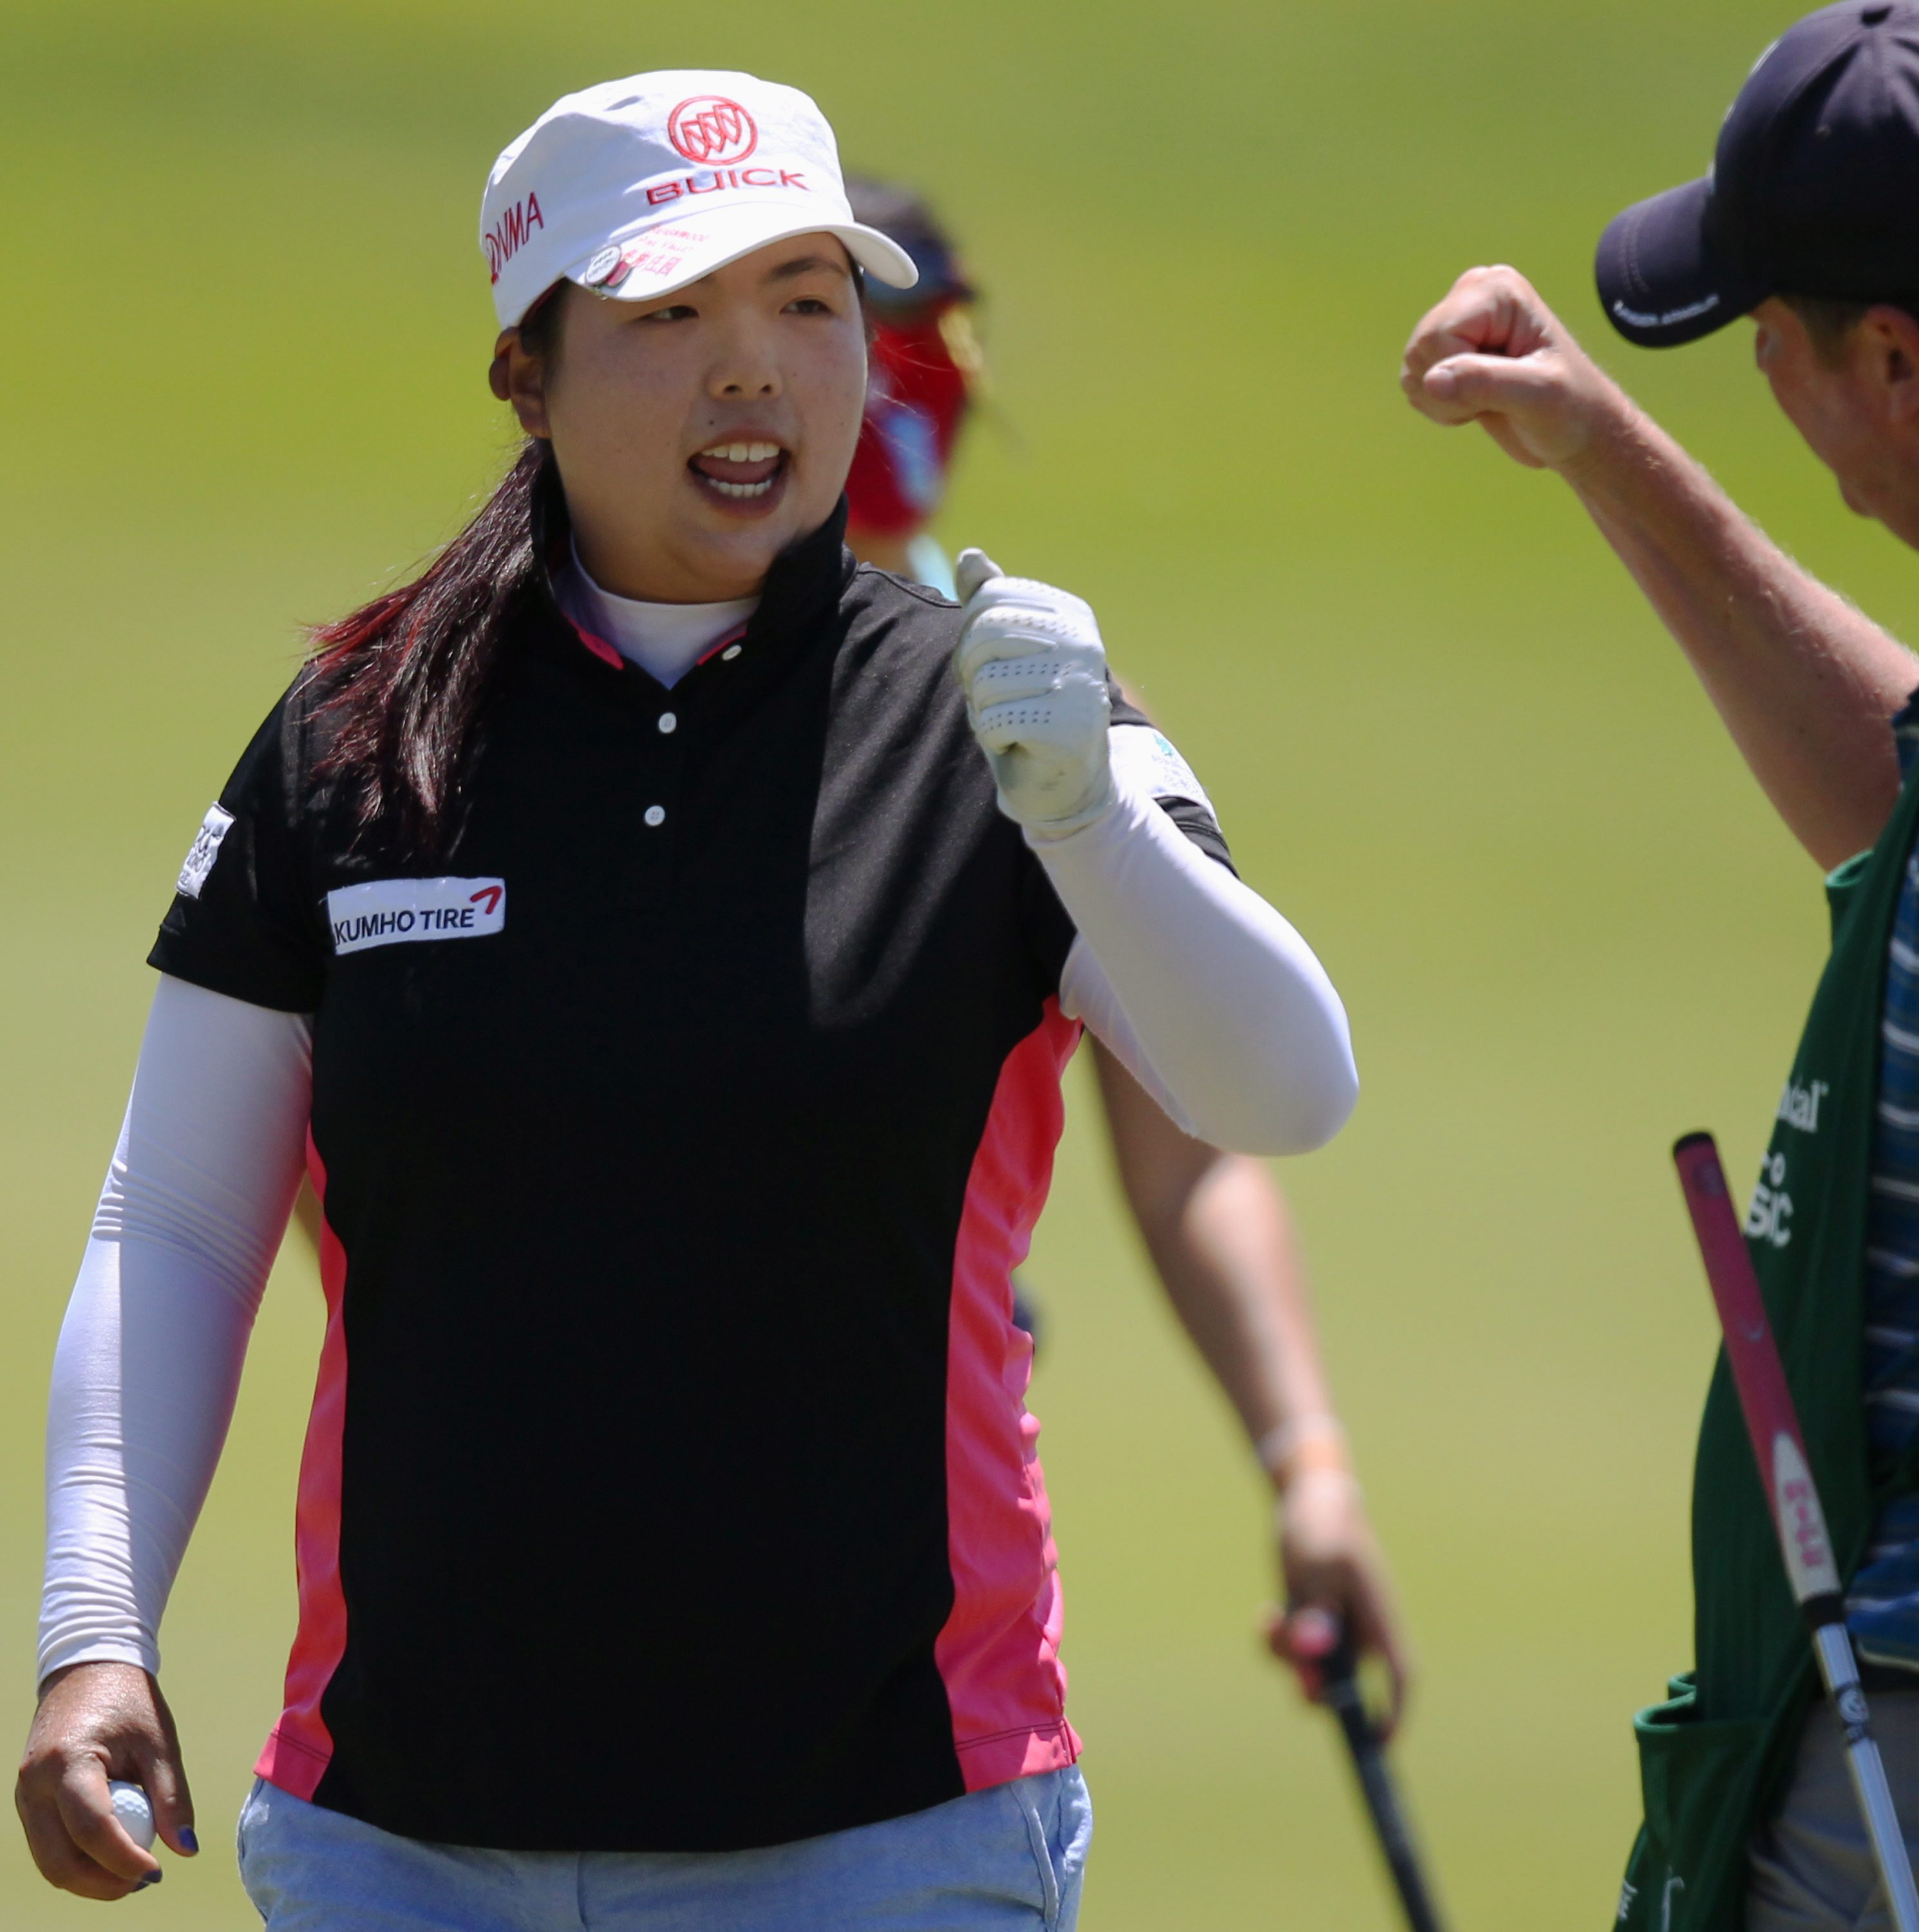 Shanshan Feng celebrates after making an eagle on the fifth hole during the third round of the Manulife Financial LPGA Classic golf tournament Saturday, June 7, 2014 in Waterloo, Ontario